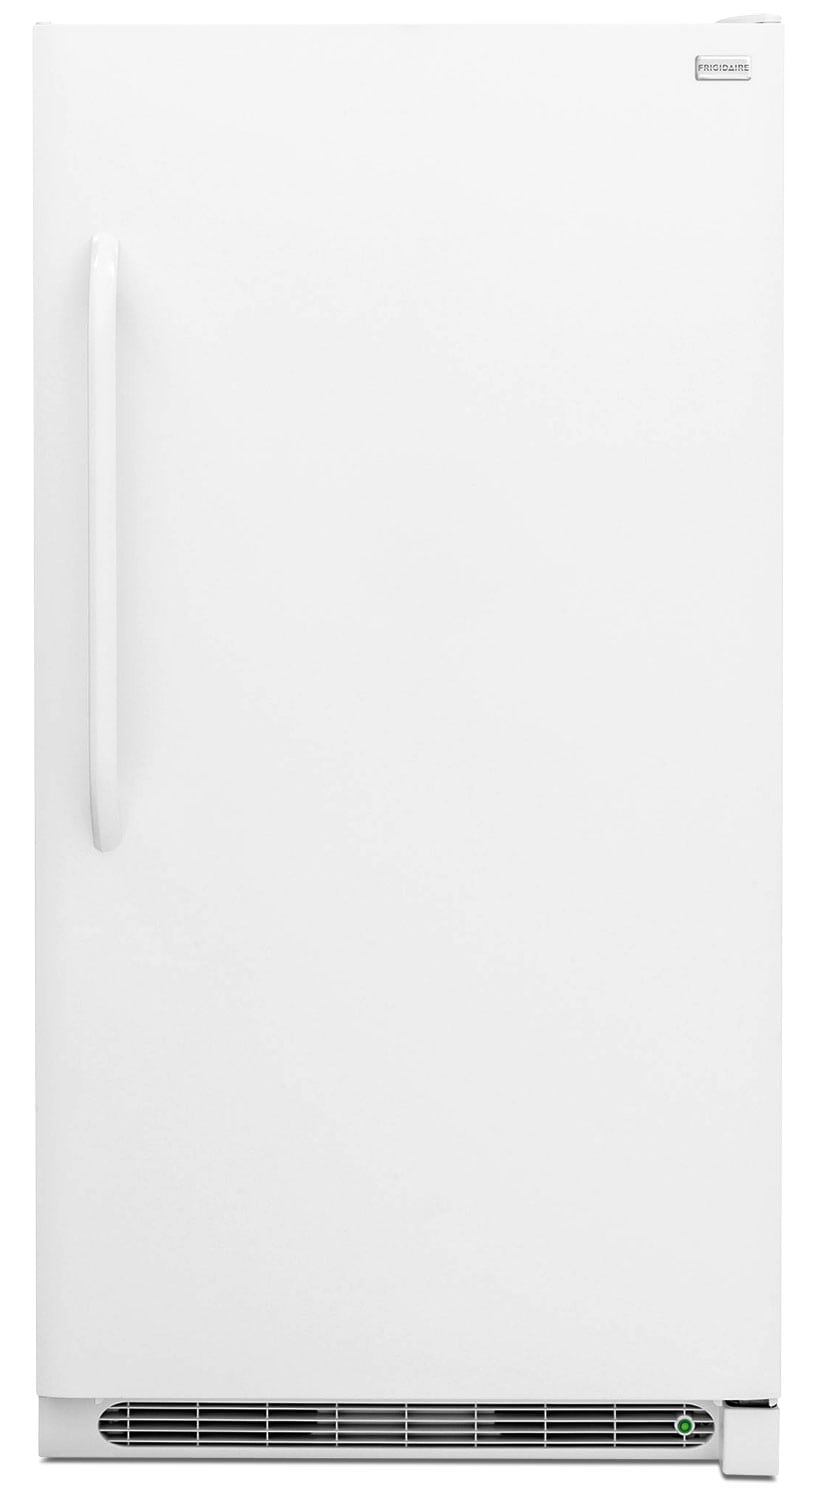 Refrigerators and Freezers - Frigidaire White Upright Freezer (20.9 Cu. Ft.) - FFFU21M1QW